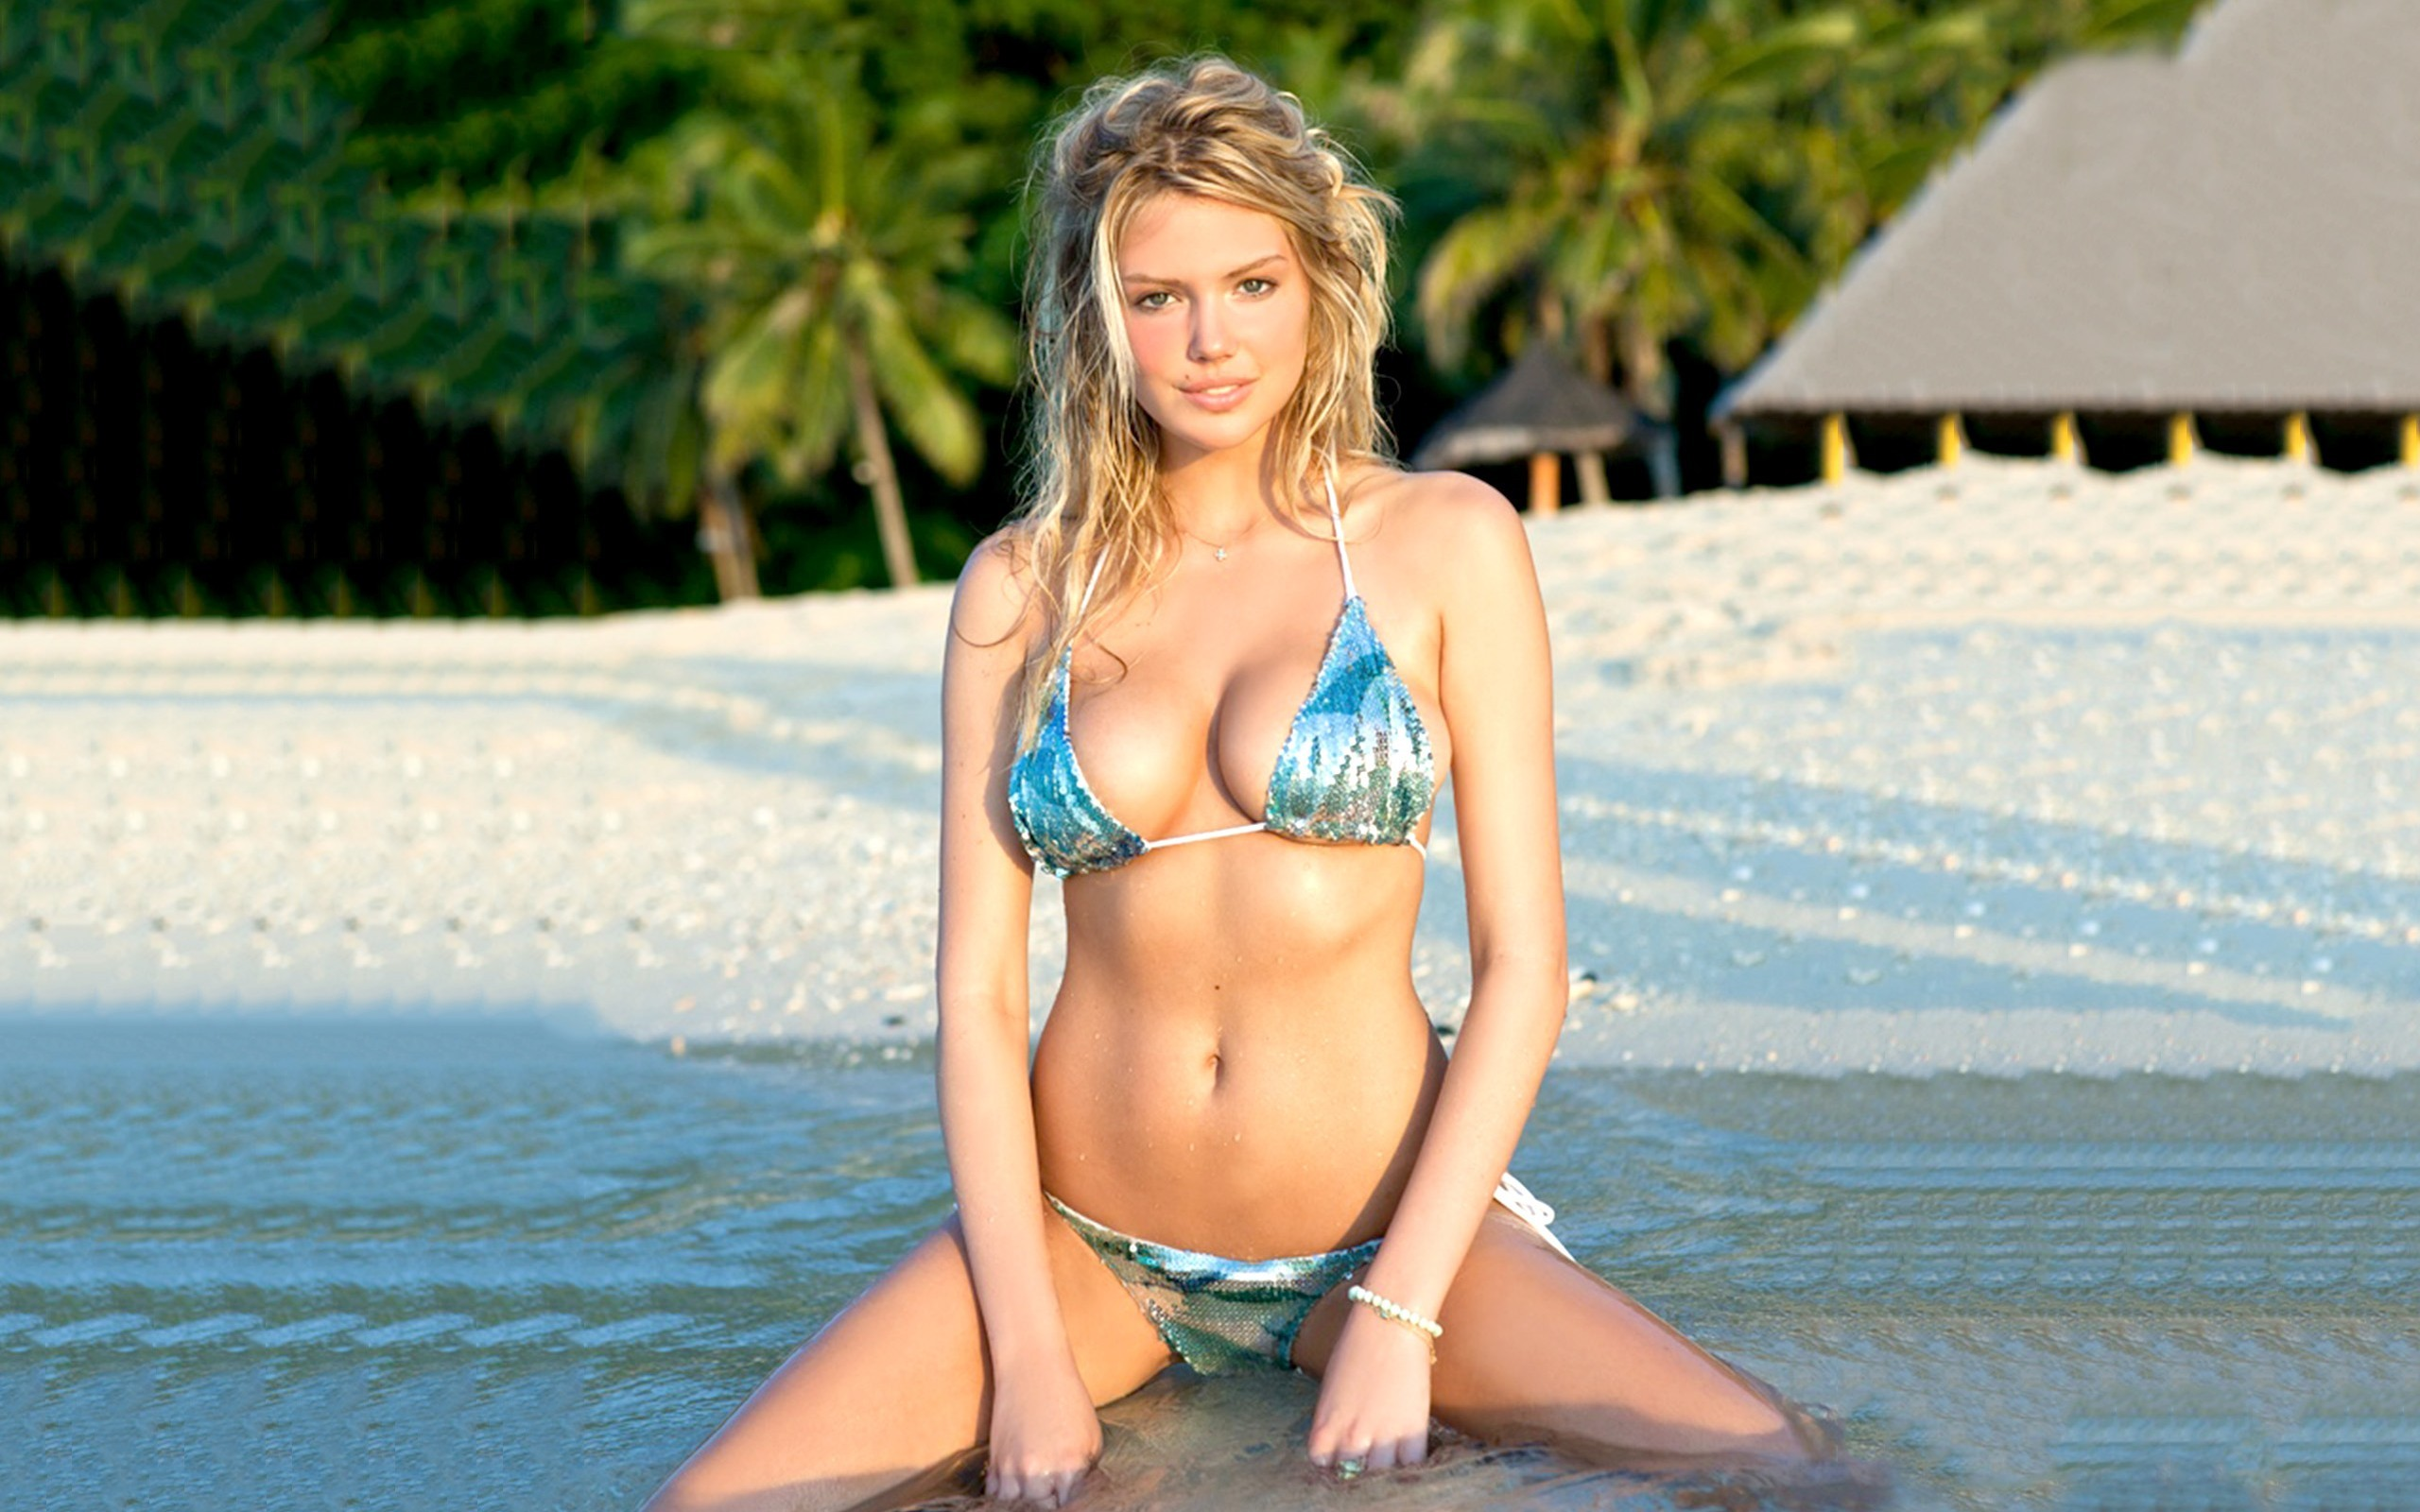 Explore Celebrity Wallpapers, Kate Upton, and more!